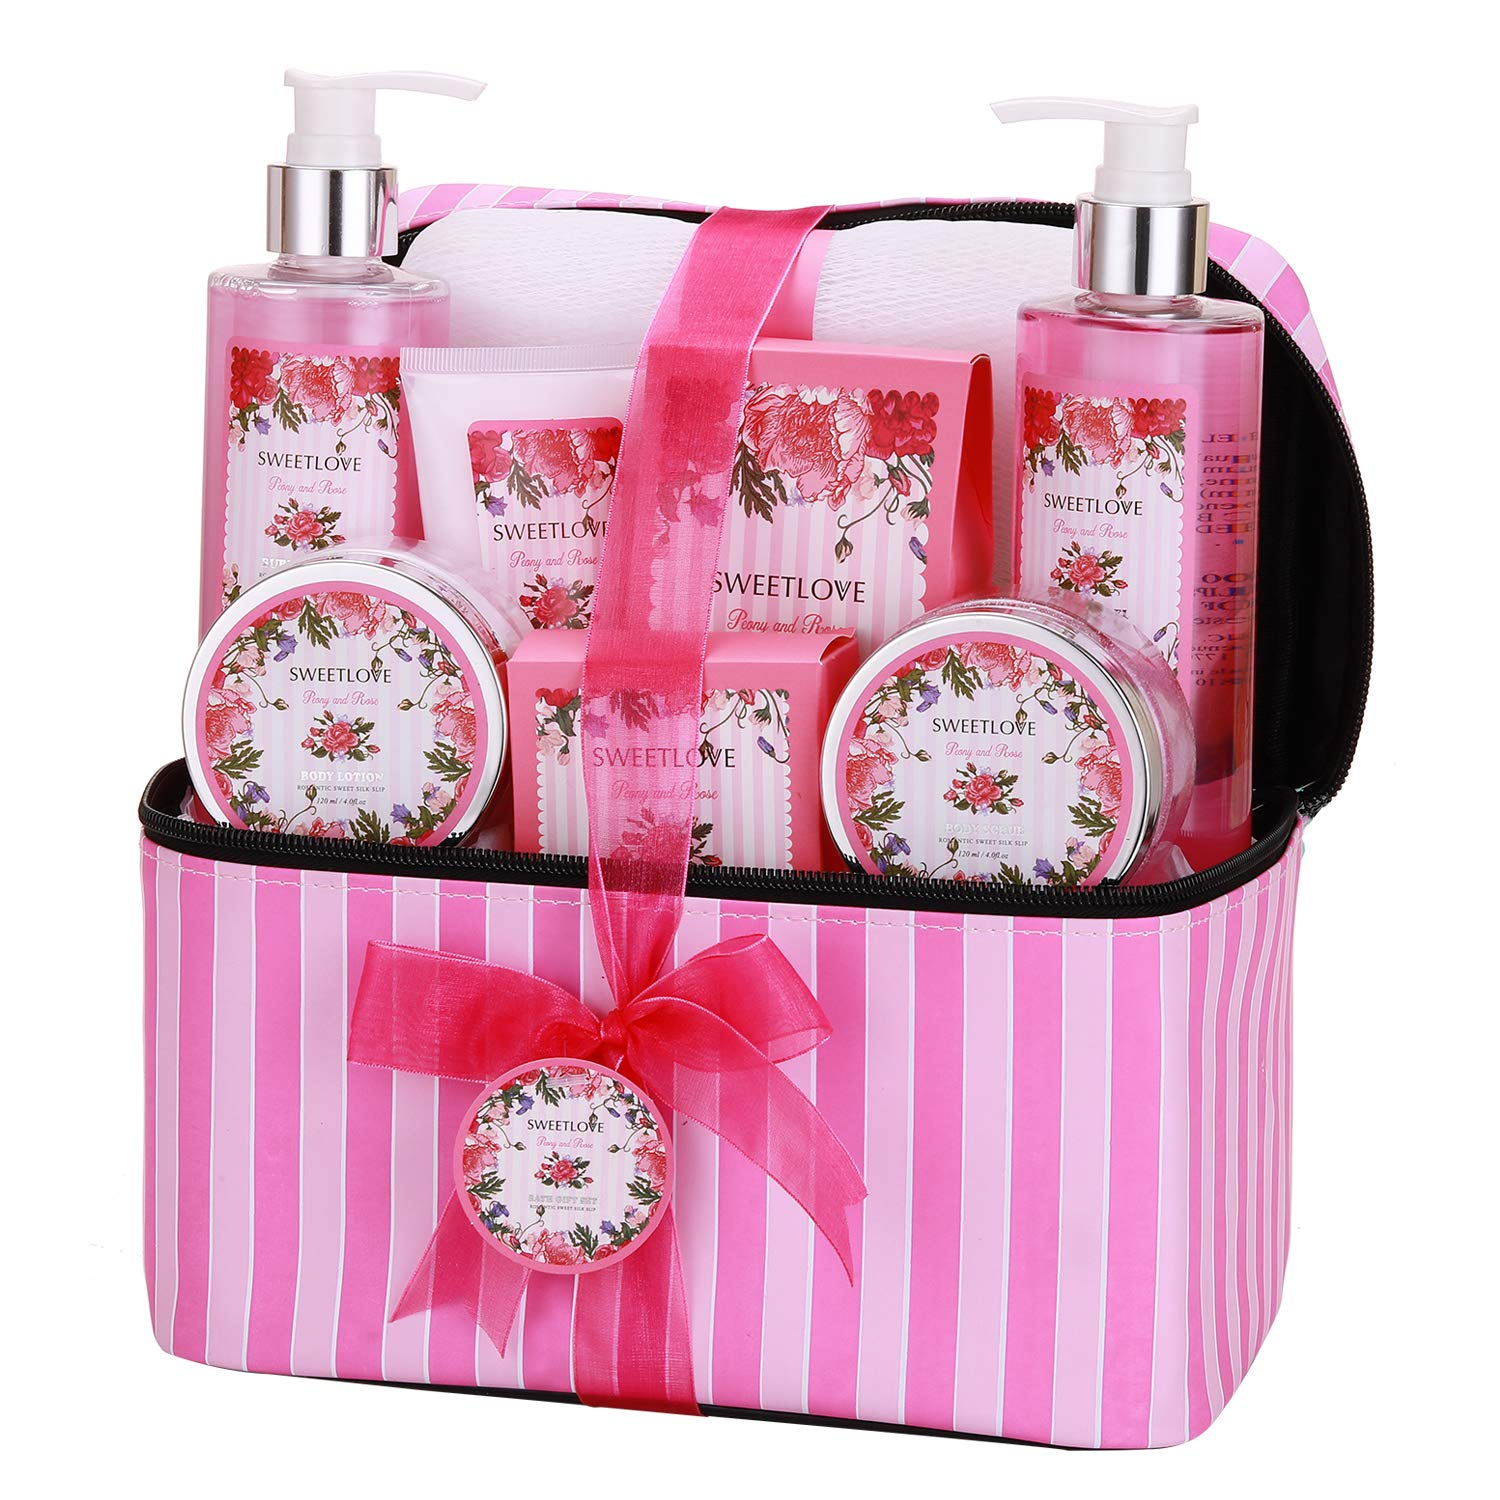 Home Spa Gift Set with Cosmetic Bag, SWEETLOVE Gift Basket 9-Piece, Rose& Peony Scent,Best gifts for Women, Chrismas,Mother's Day.